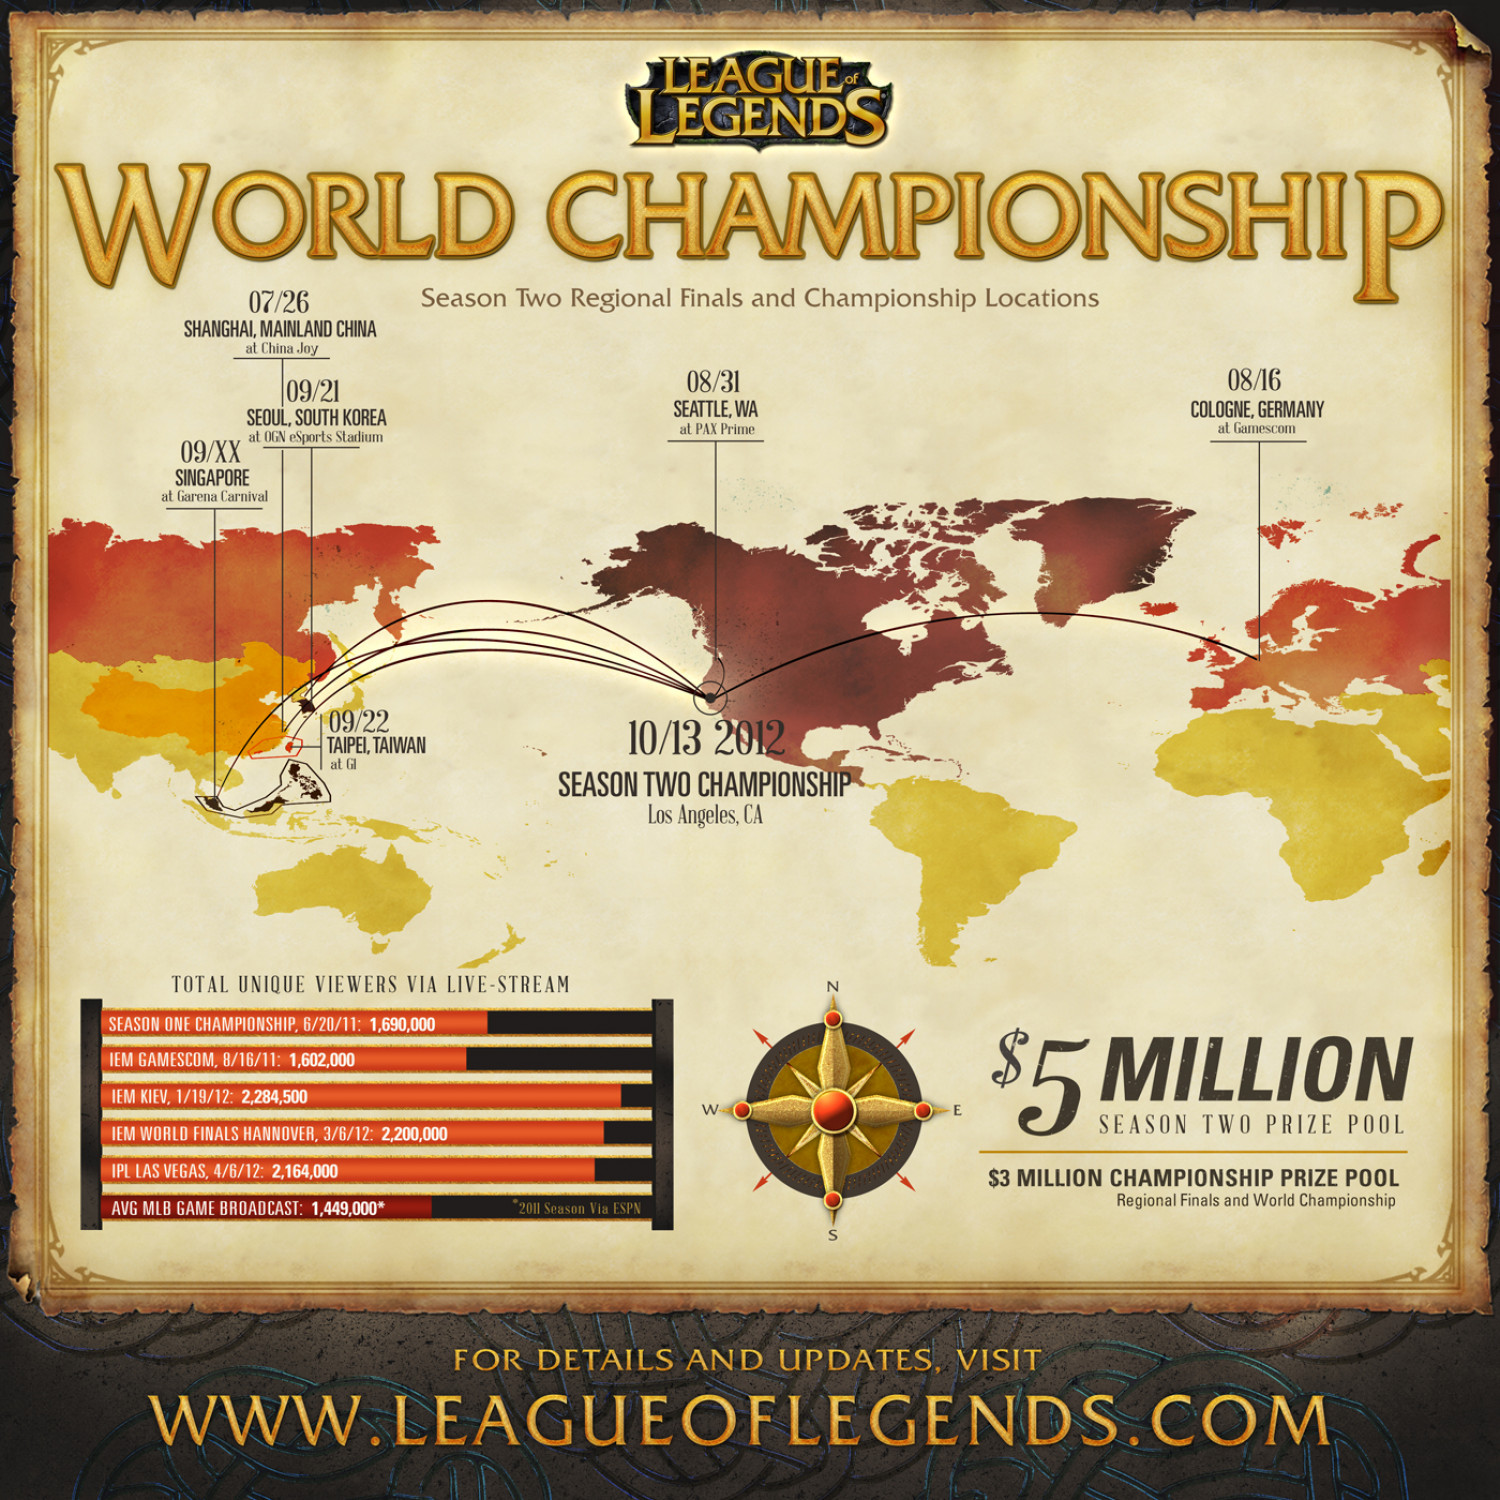 League of Legends - World Championship Infographic